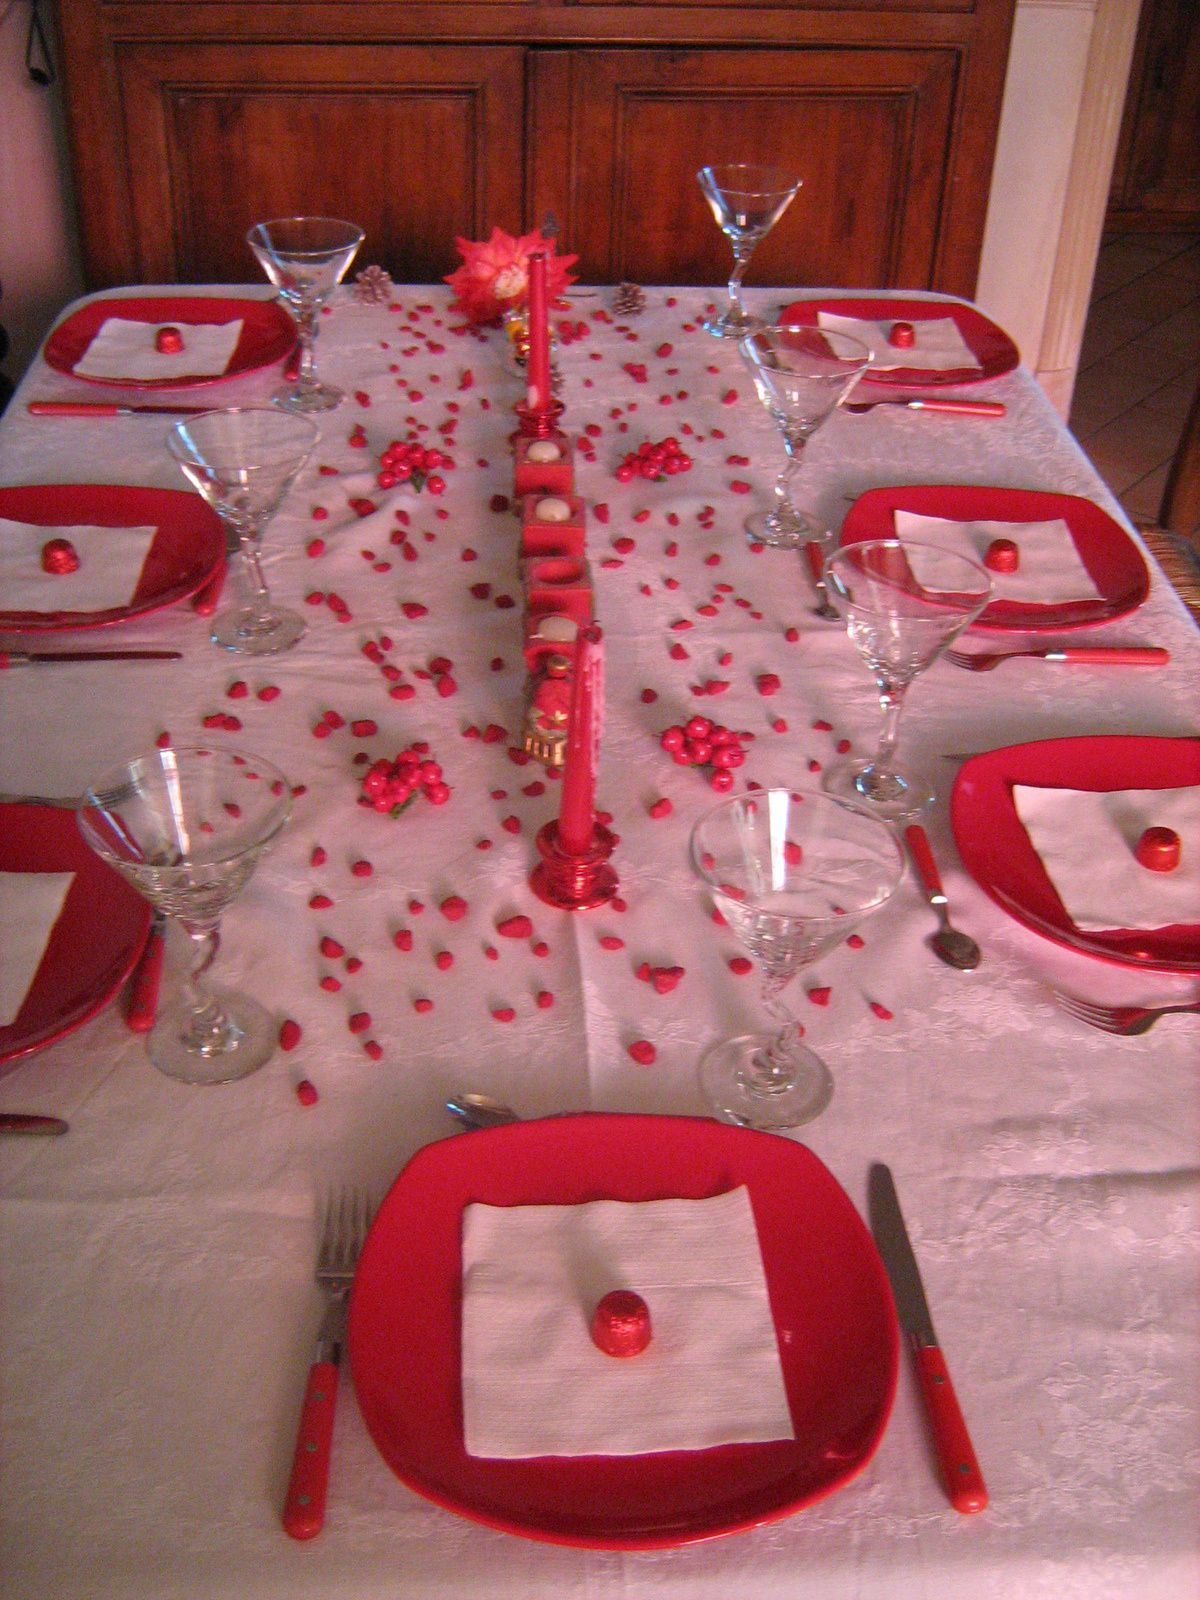 Table de noel en rouge et blanc 1 table et d co d 39 estelle for Decoration table de noel rouge et blanc